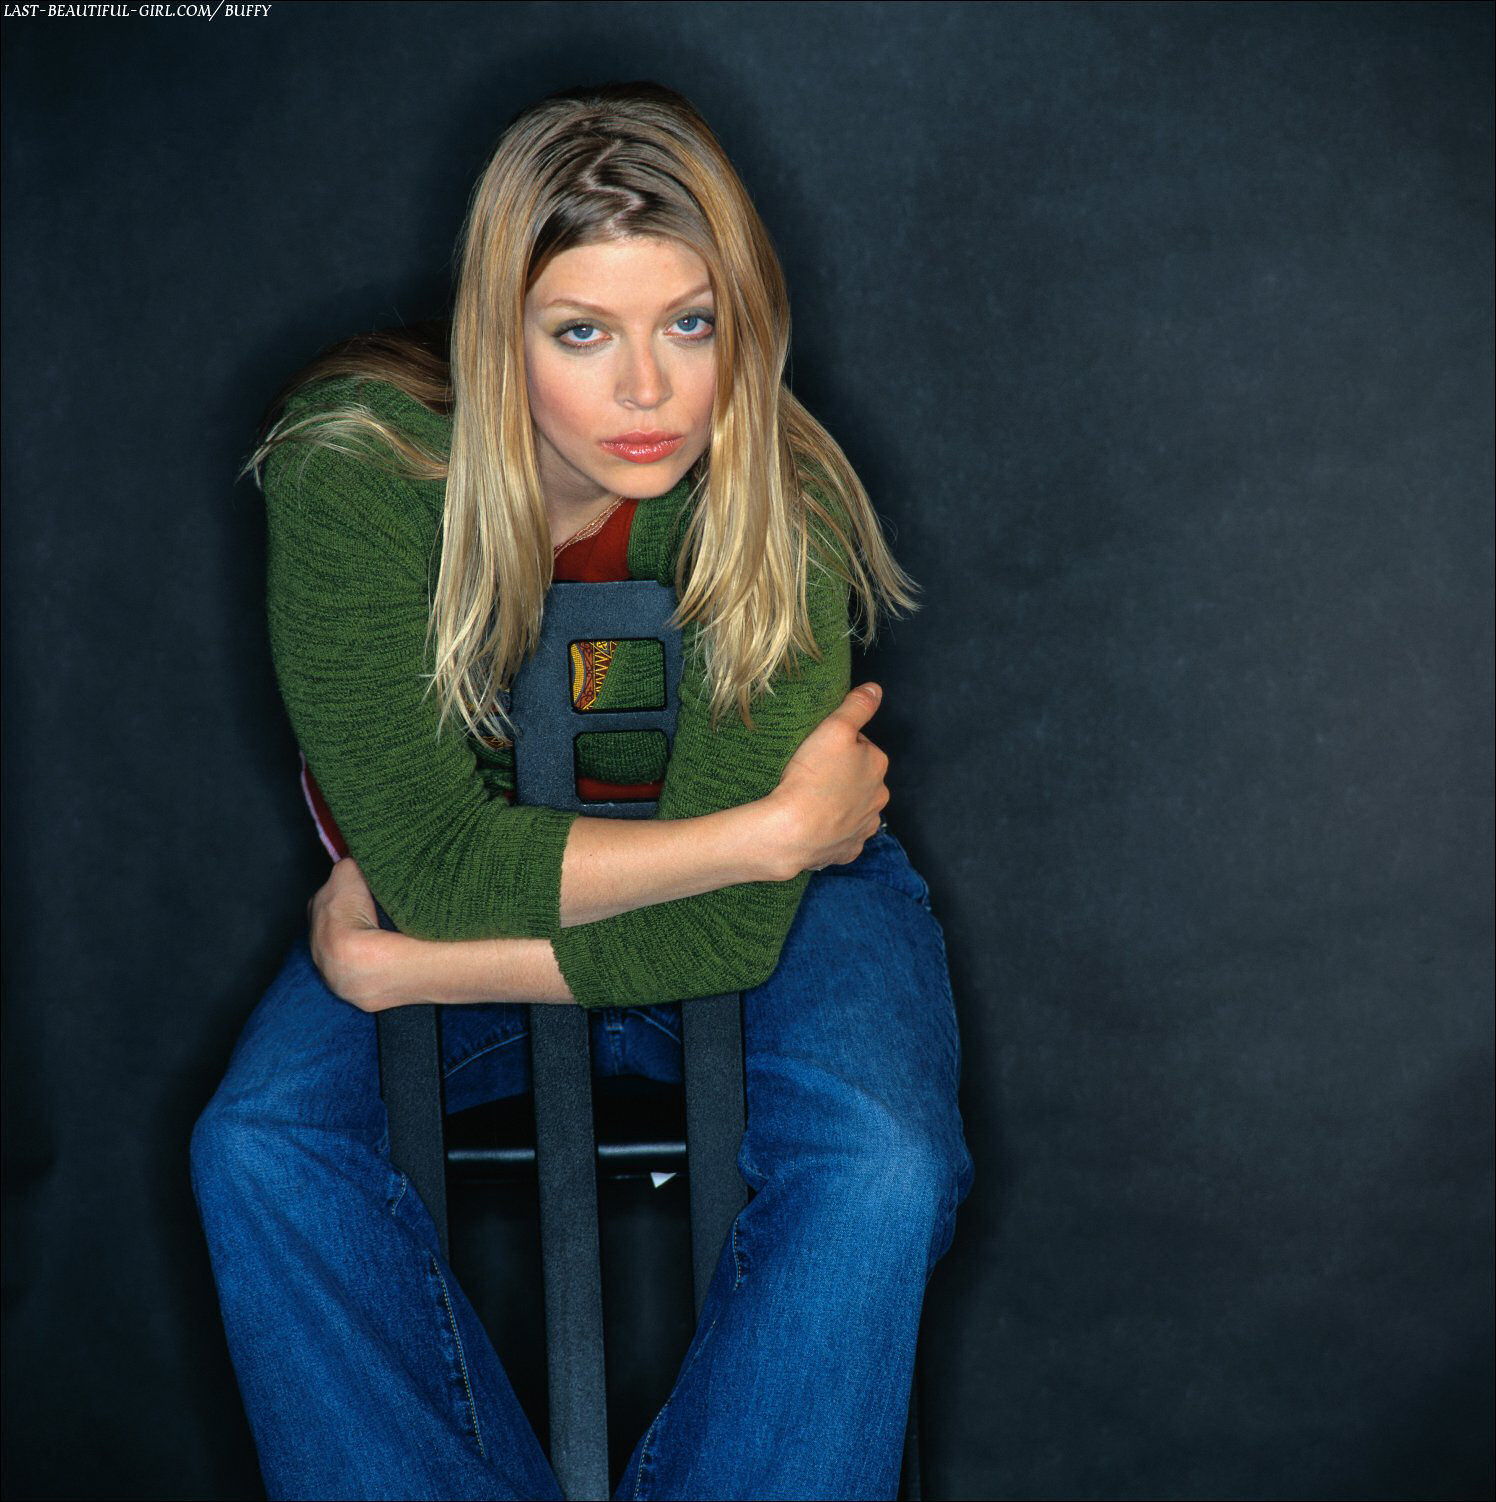 Amber Benson - Amber Benson Photo (25614070) - Fanpop